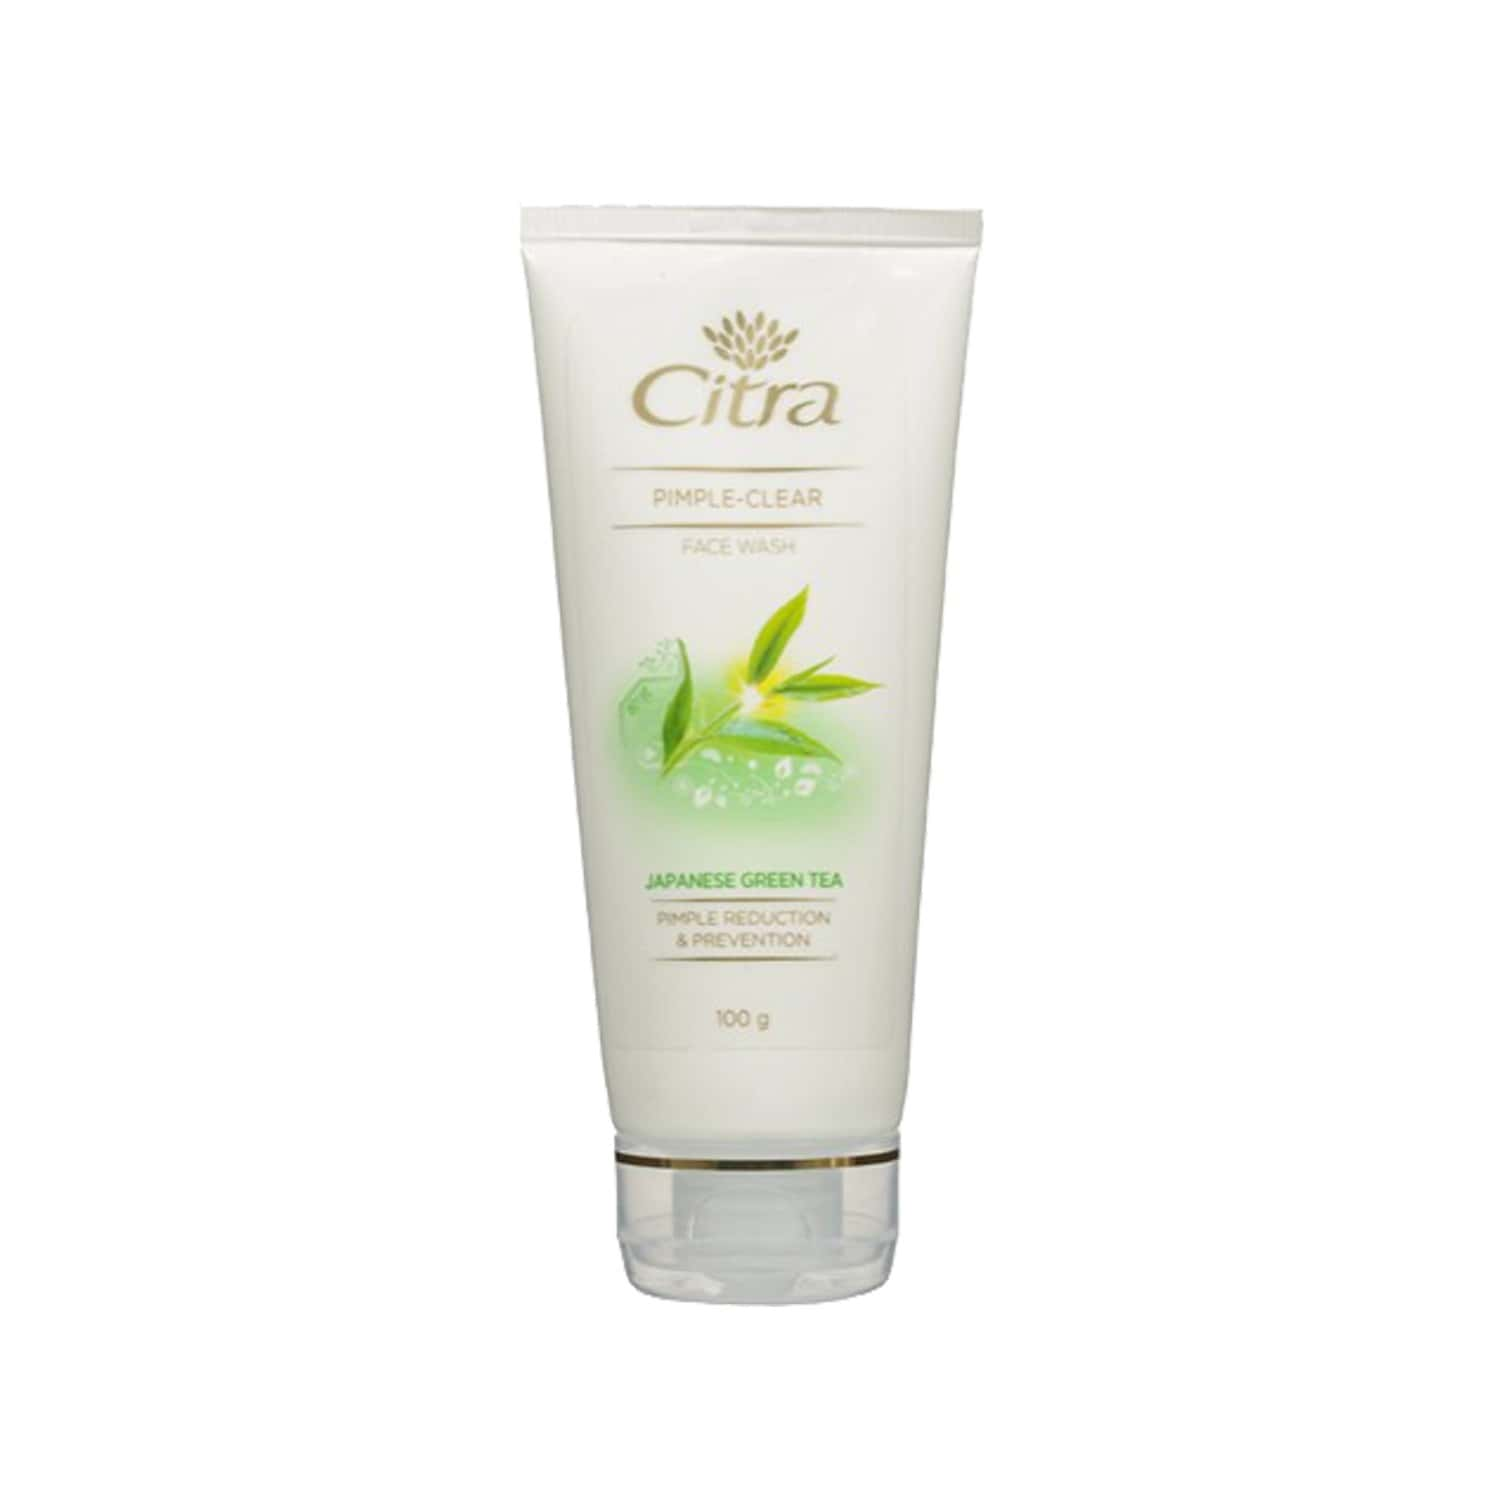 Citra Face Wash, Pimple-clear 100 Gm